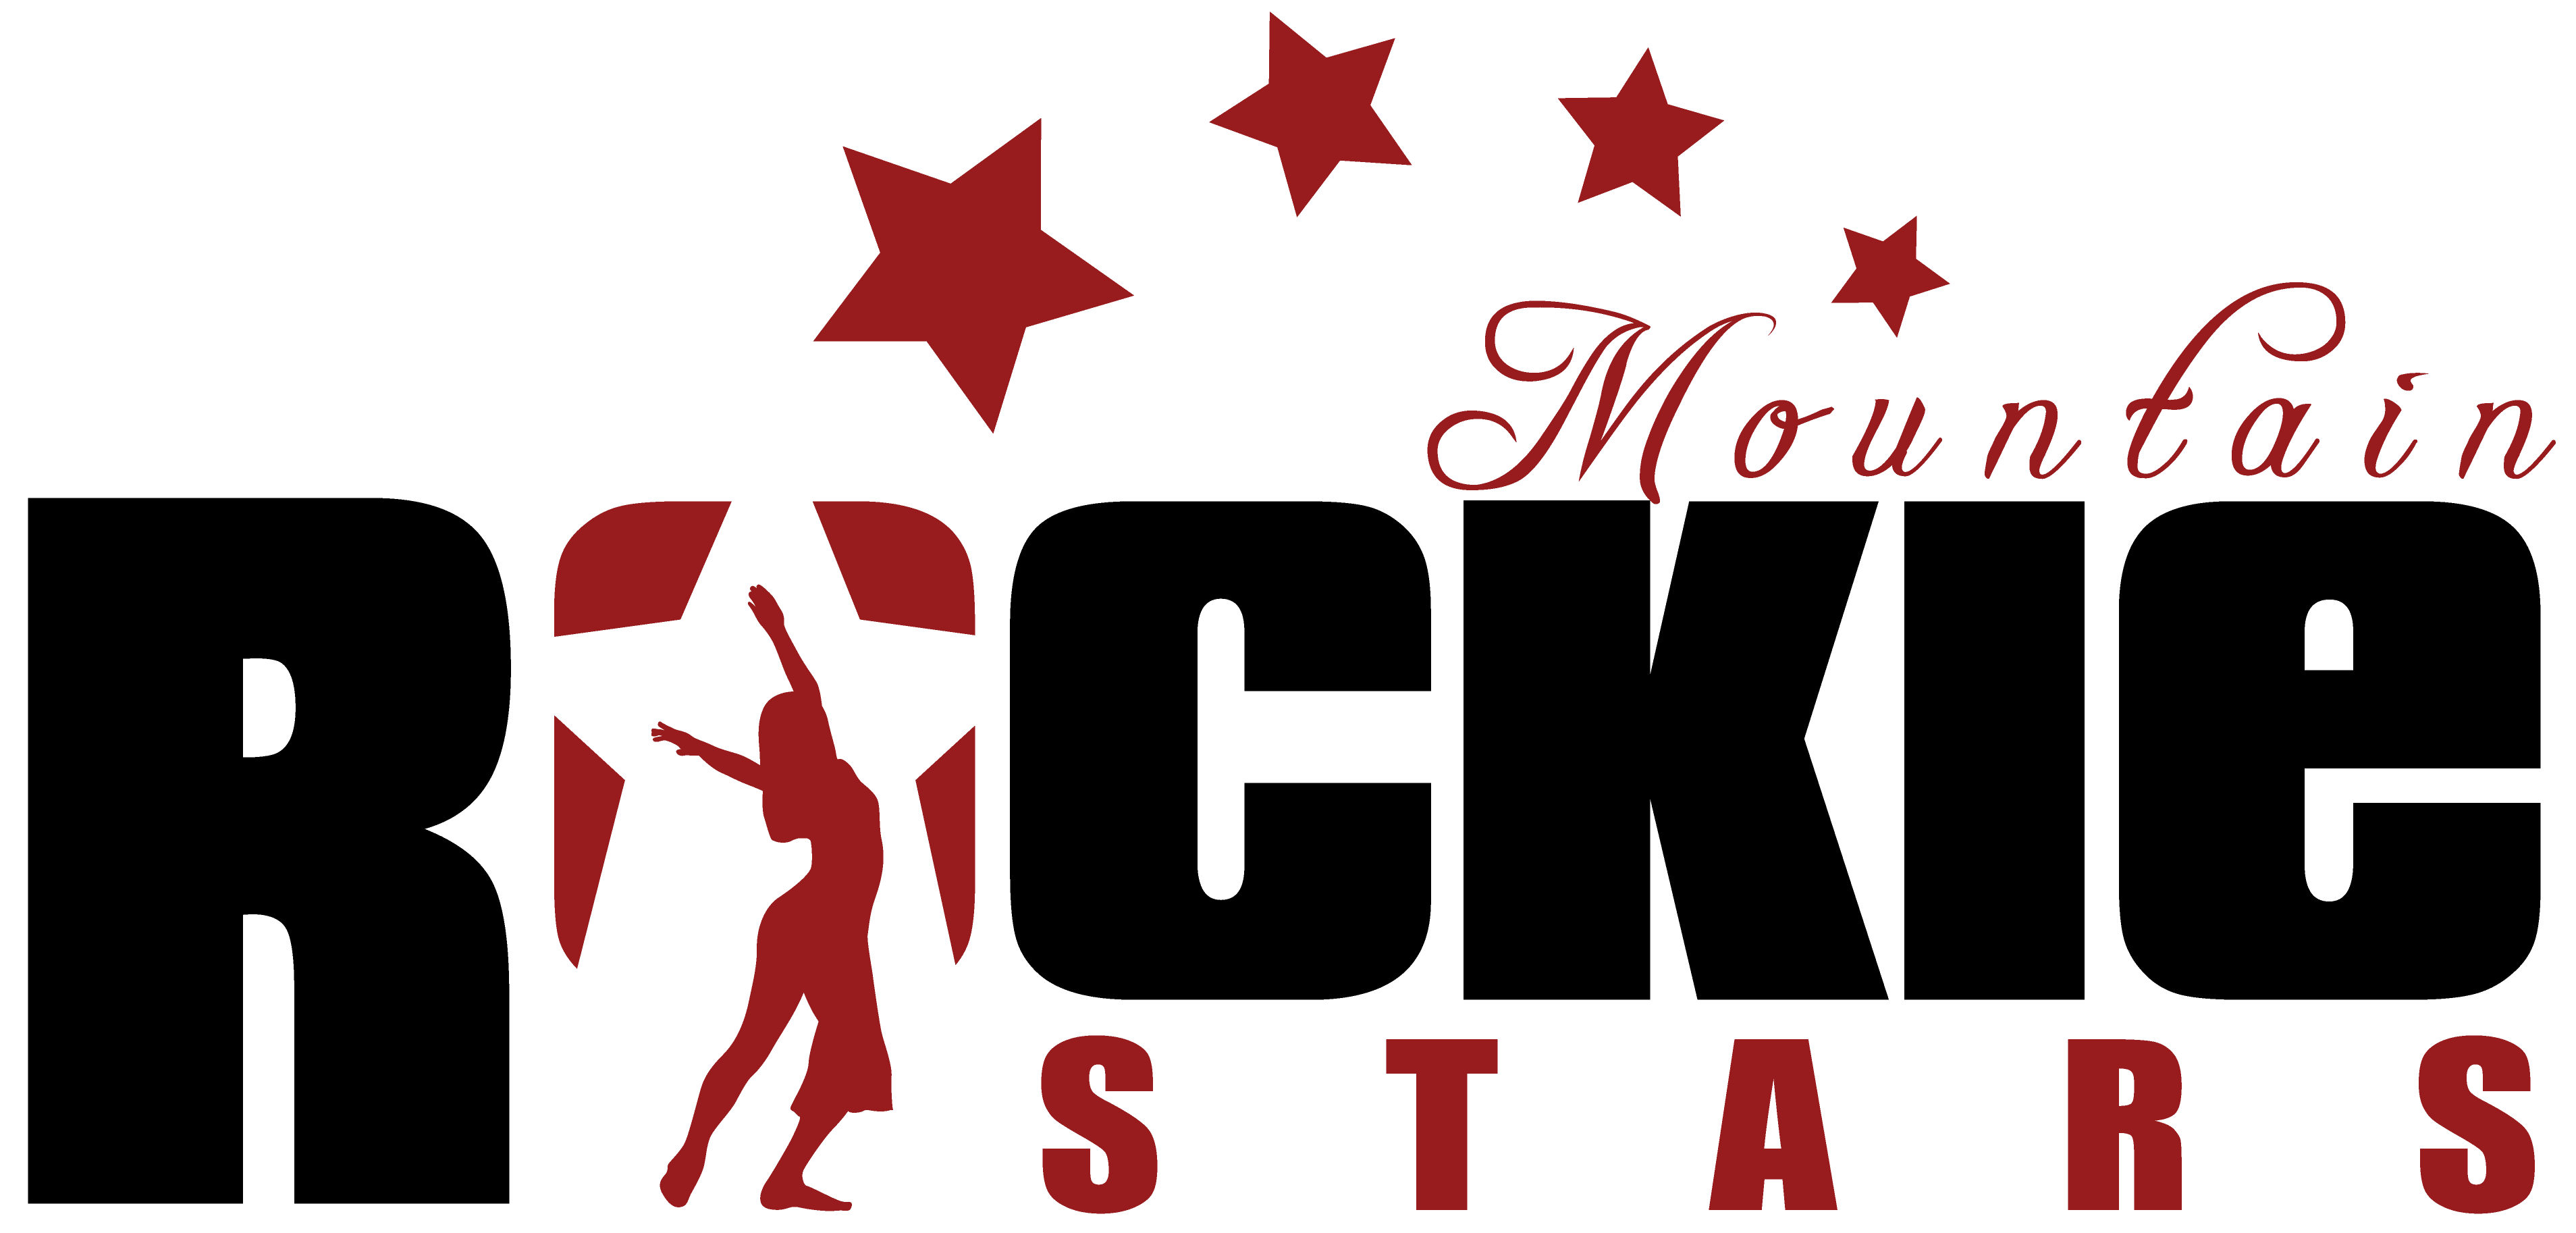 Rockie Mountain Star Dance Academy